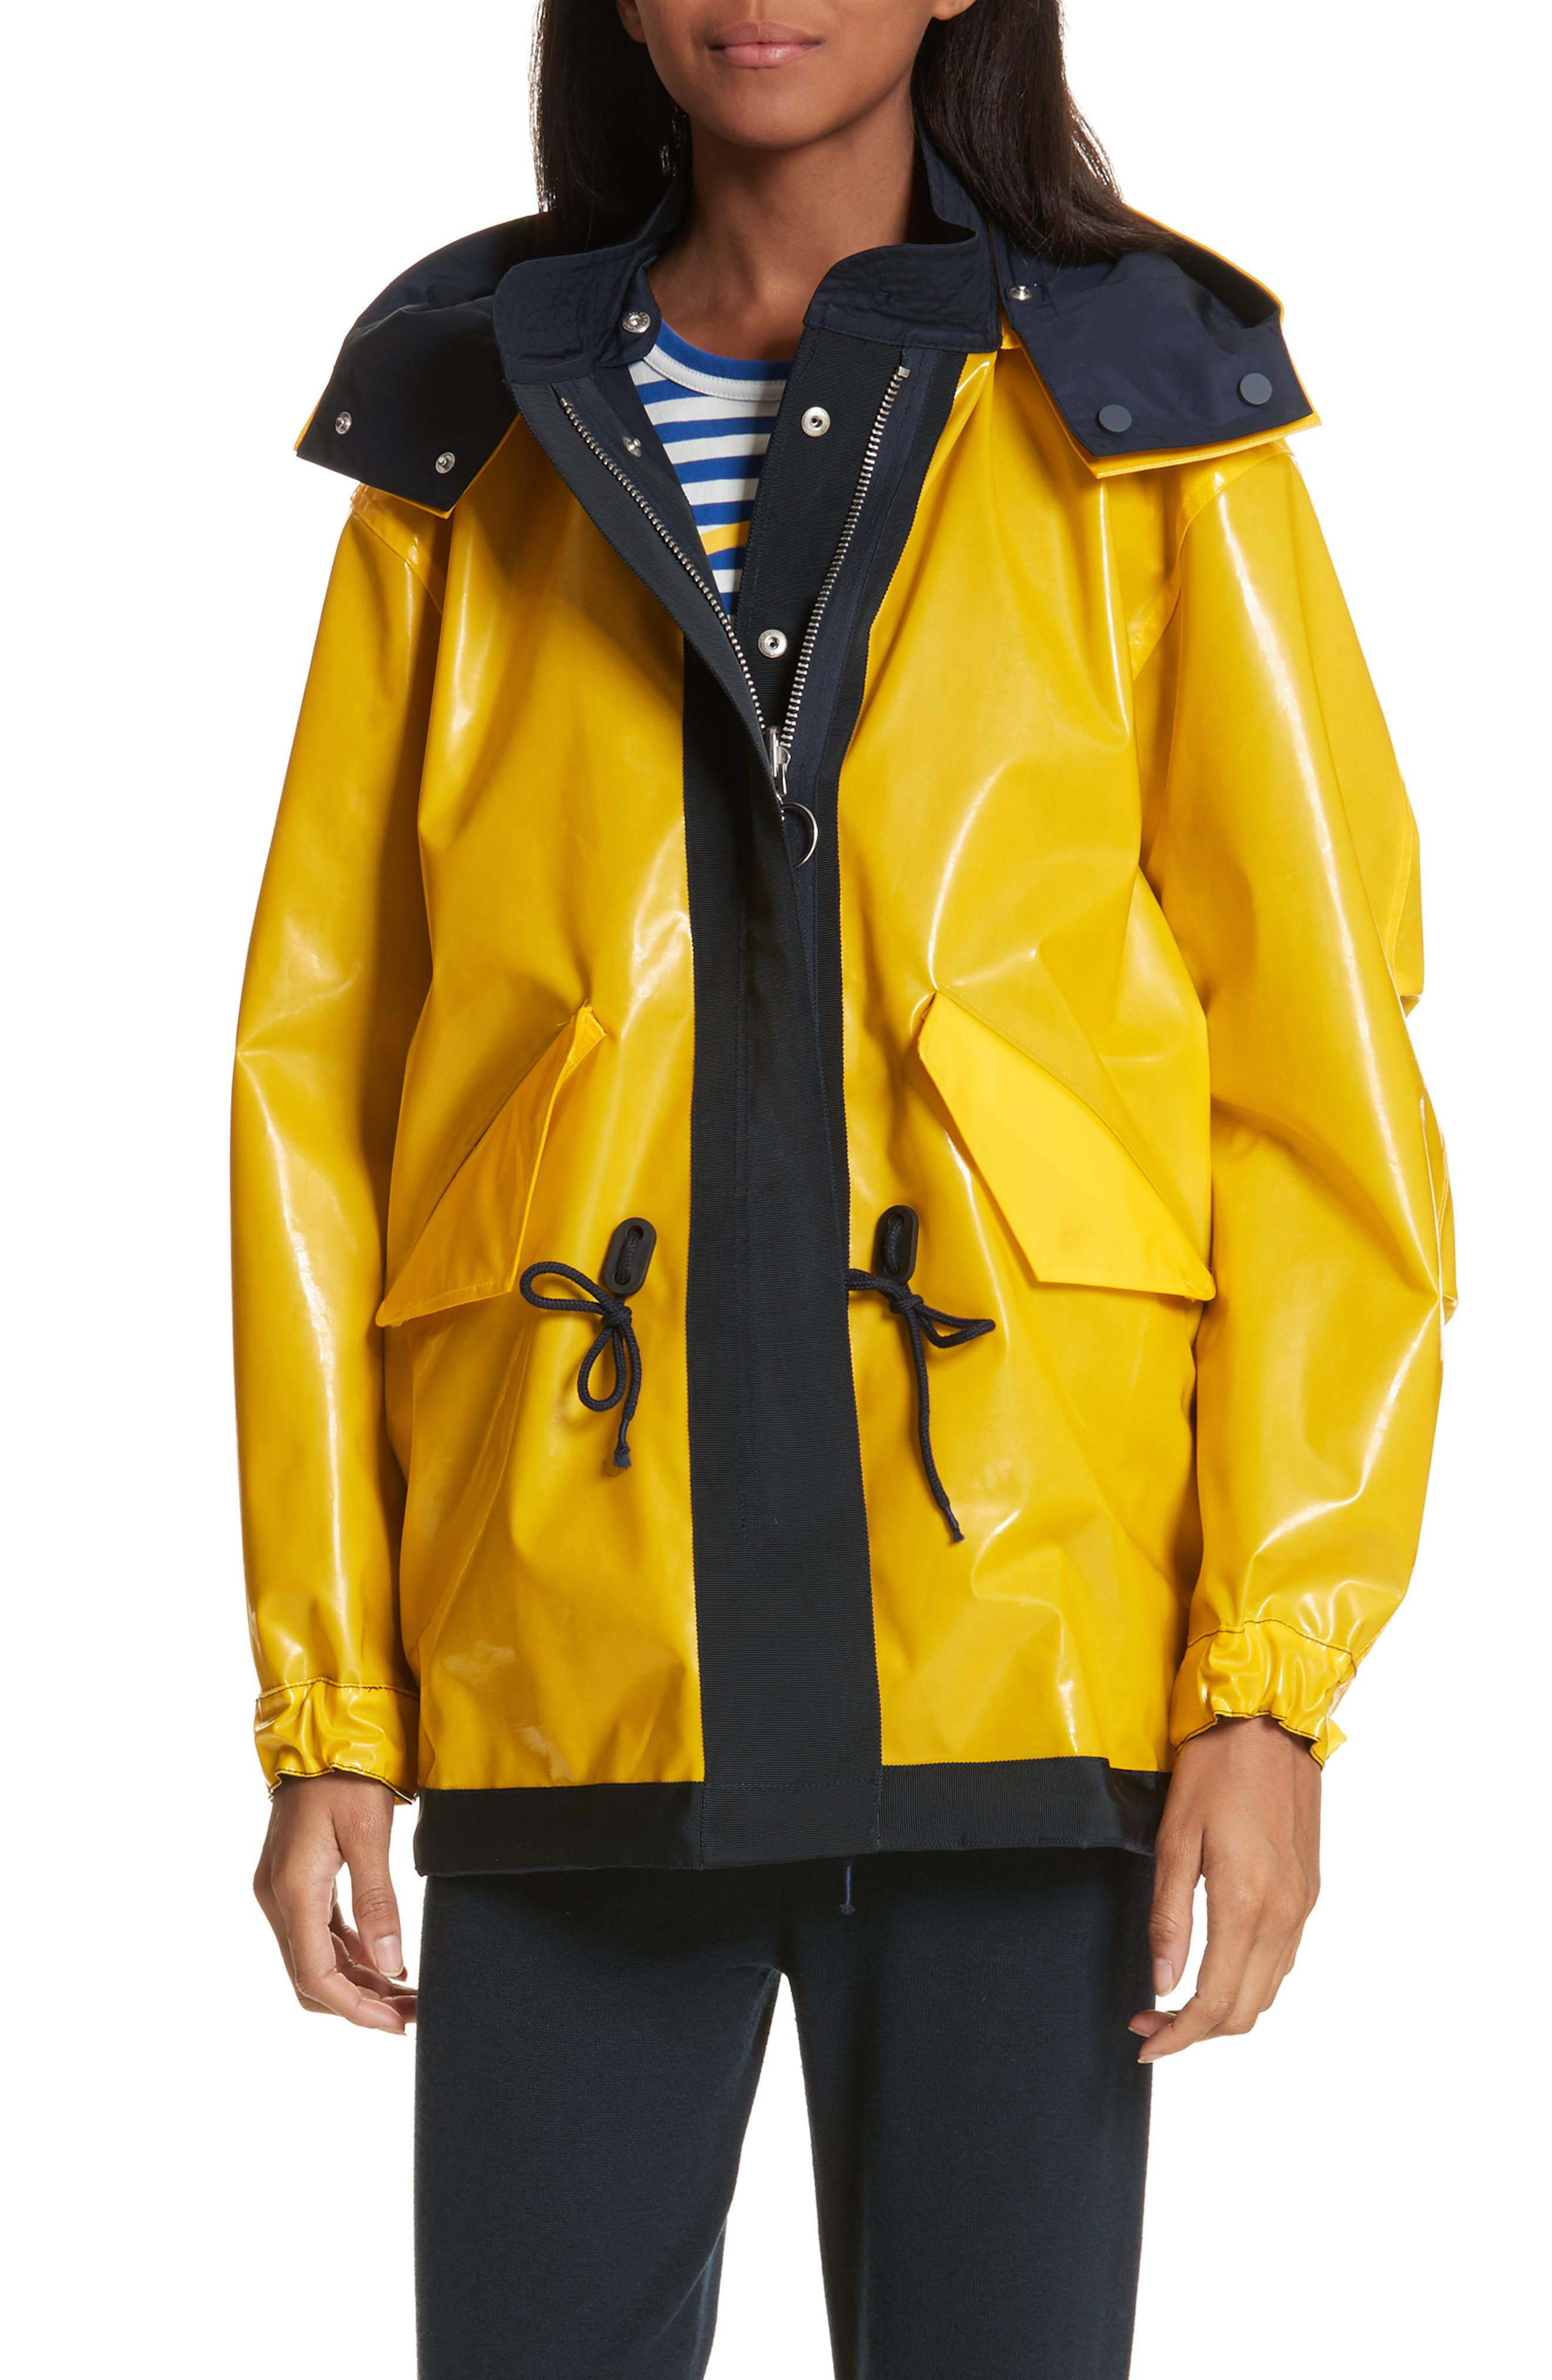 Reversible Rain Jacket,                             Main thumbnail 1, color,                             Tory Navy/ Cyber Yellow